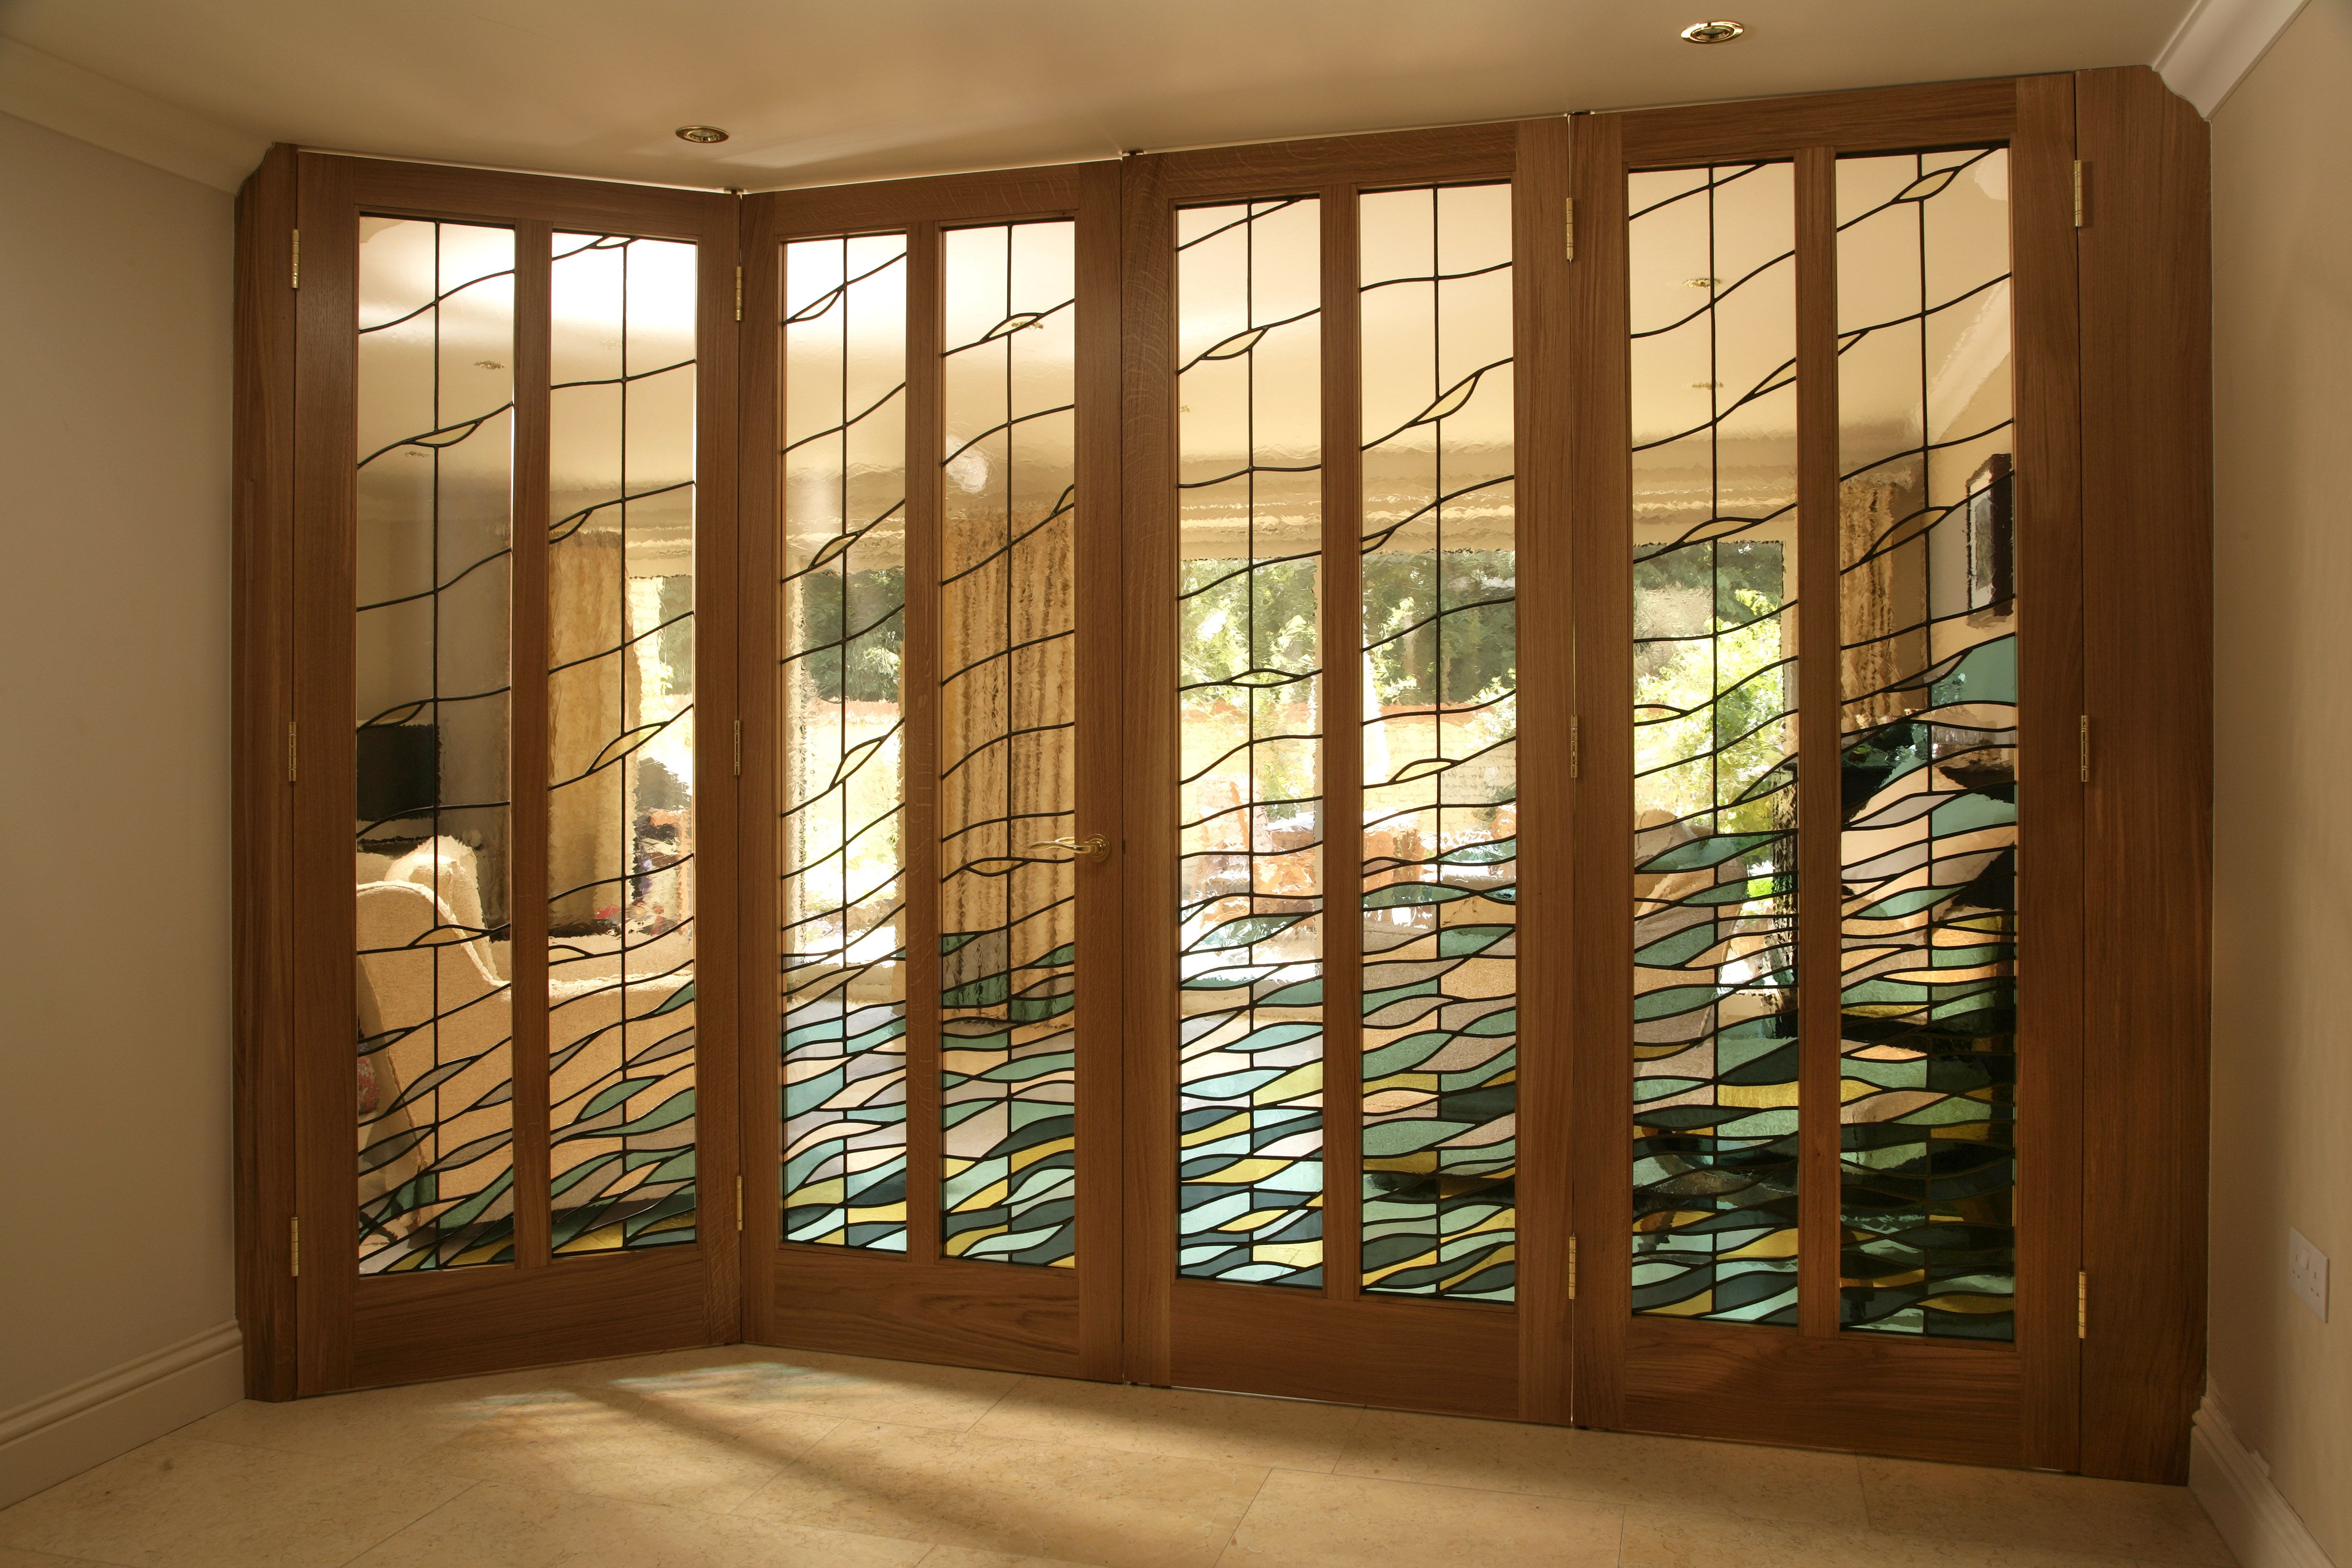 Glass Panel Interior Door In Uk Has 4 Or 6 Panels With Sections